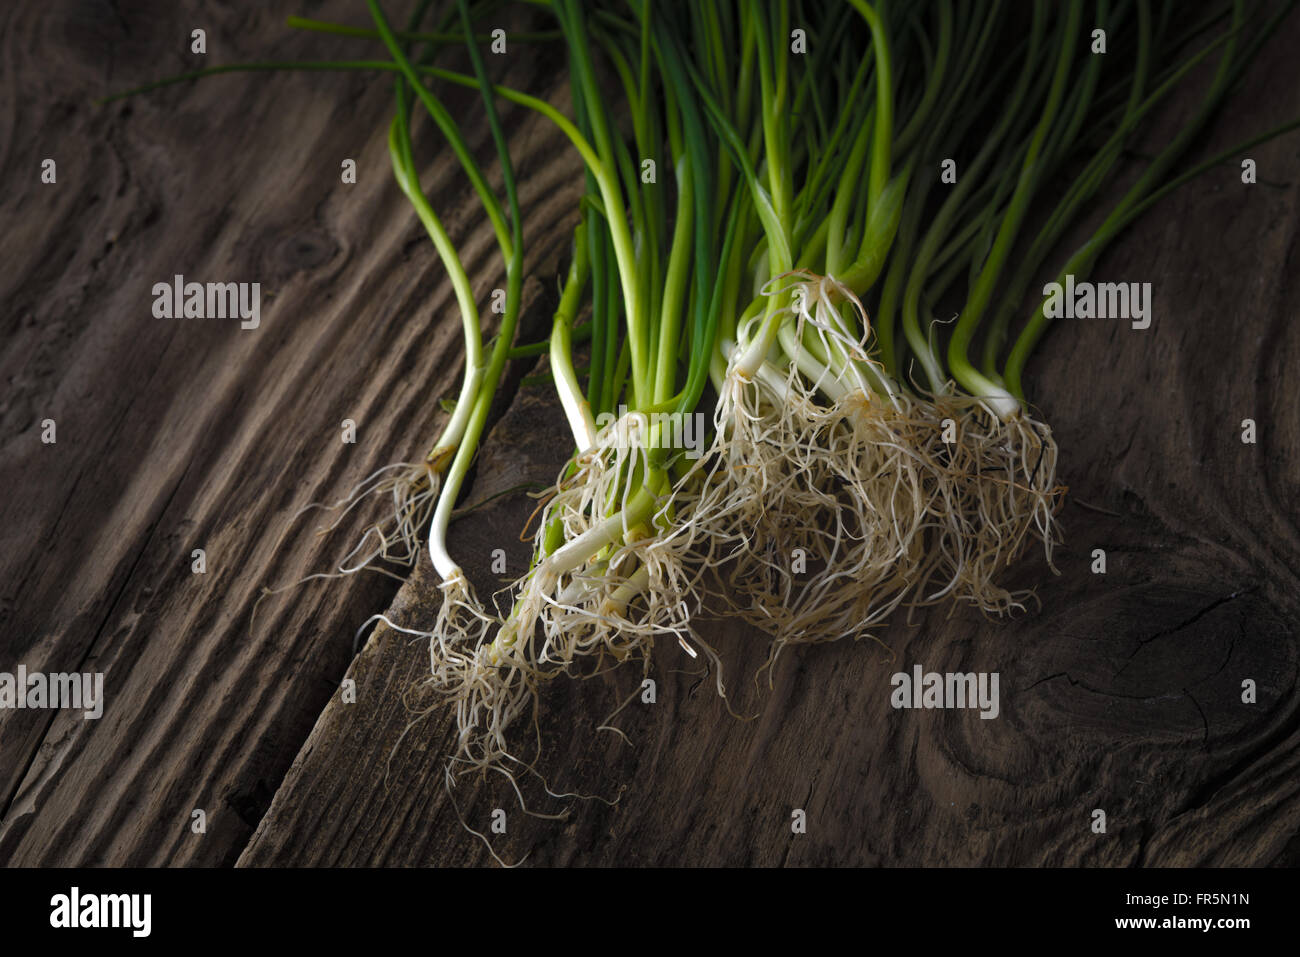 Green onion stalks and roots on old boards horizontal - Stock Image